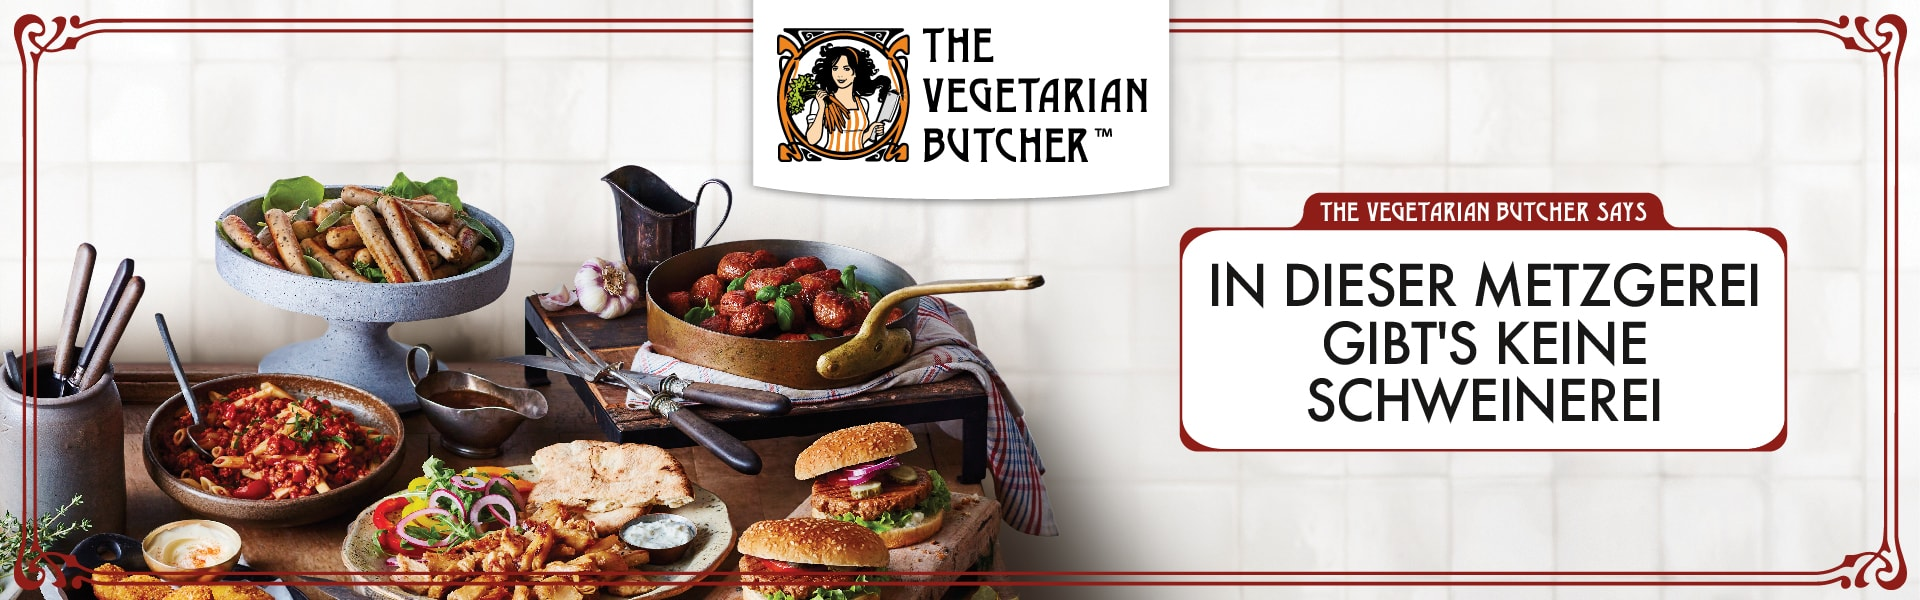 The Vegetarian Butcher